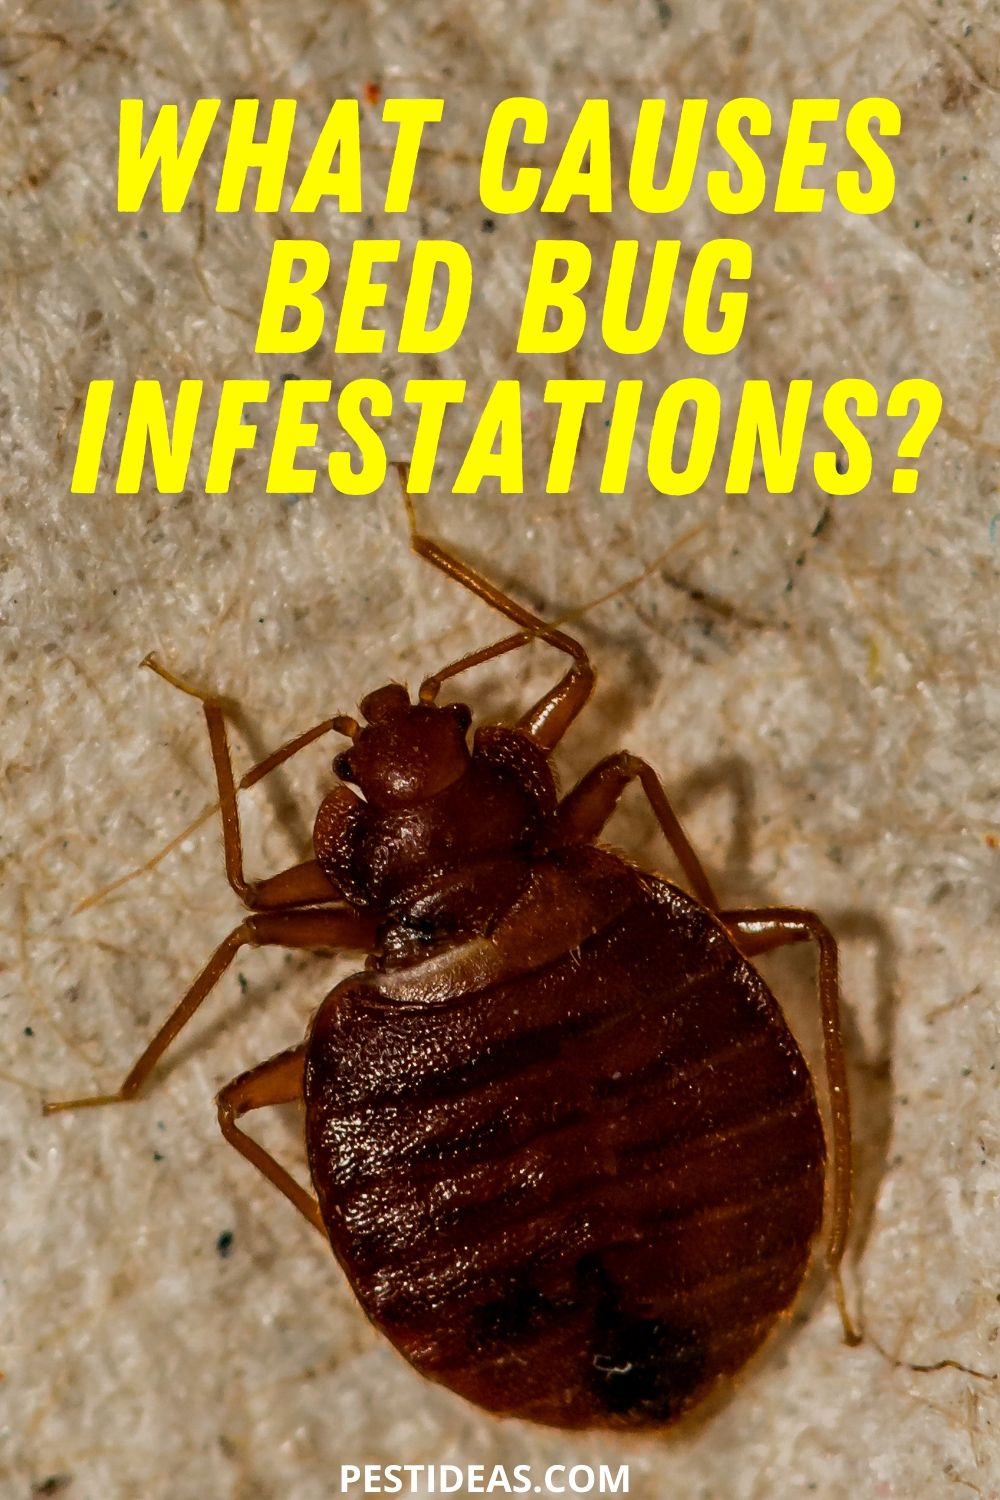 What causes bed bug infestations